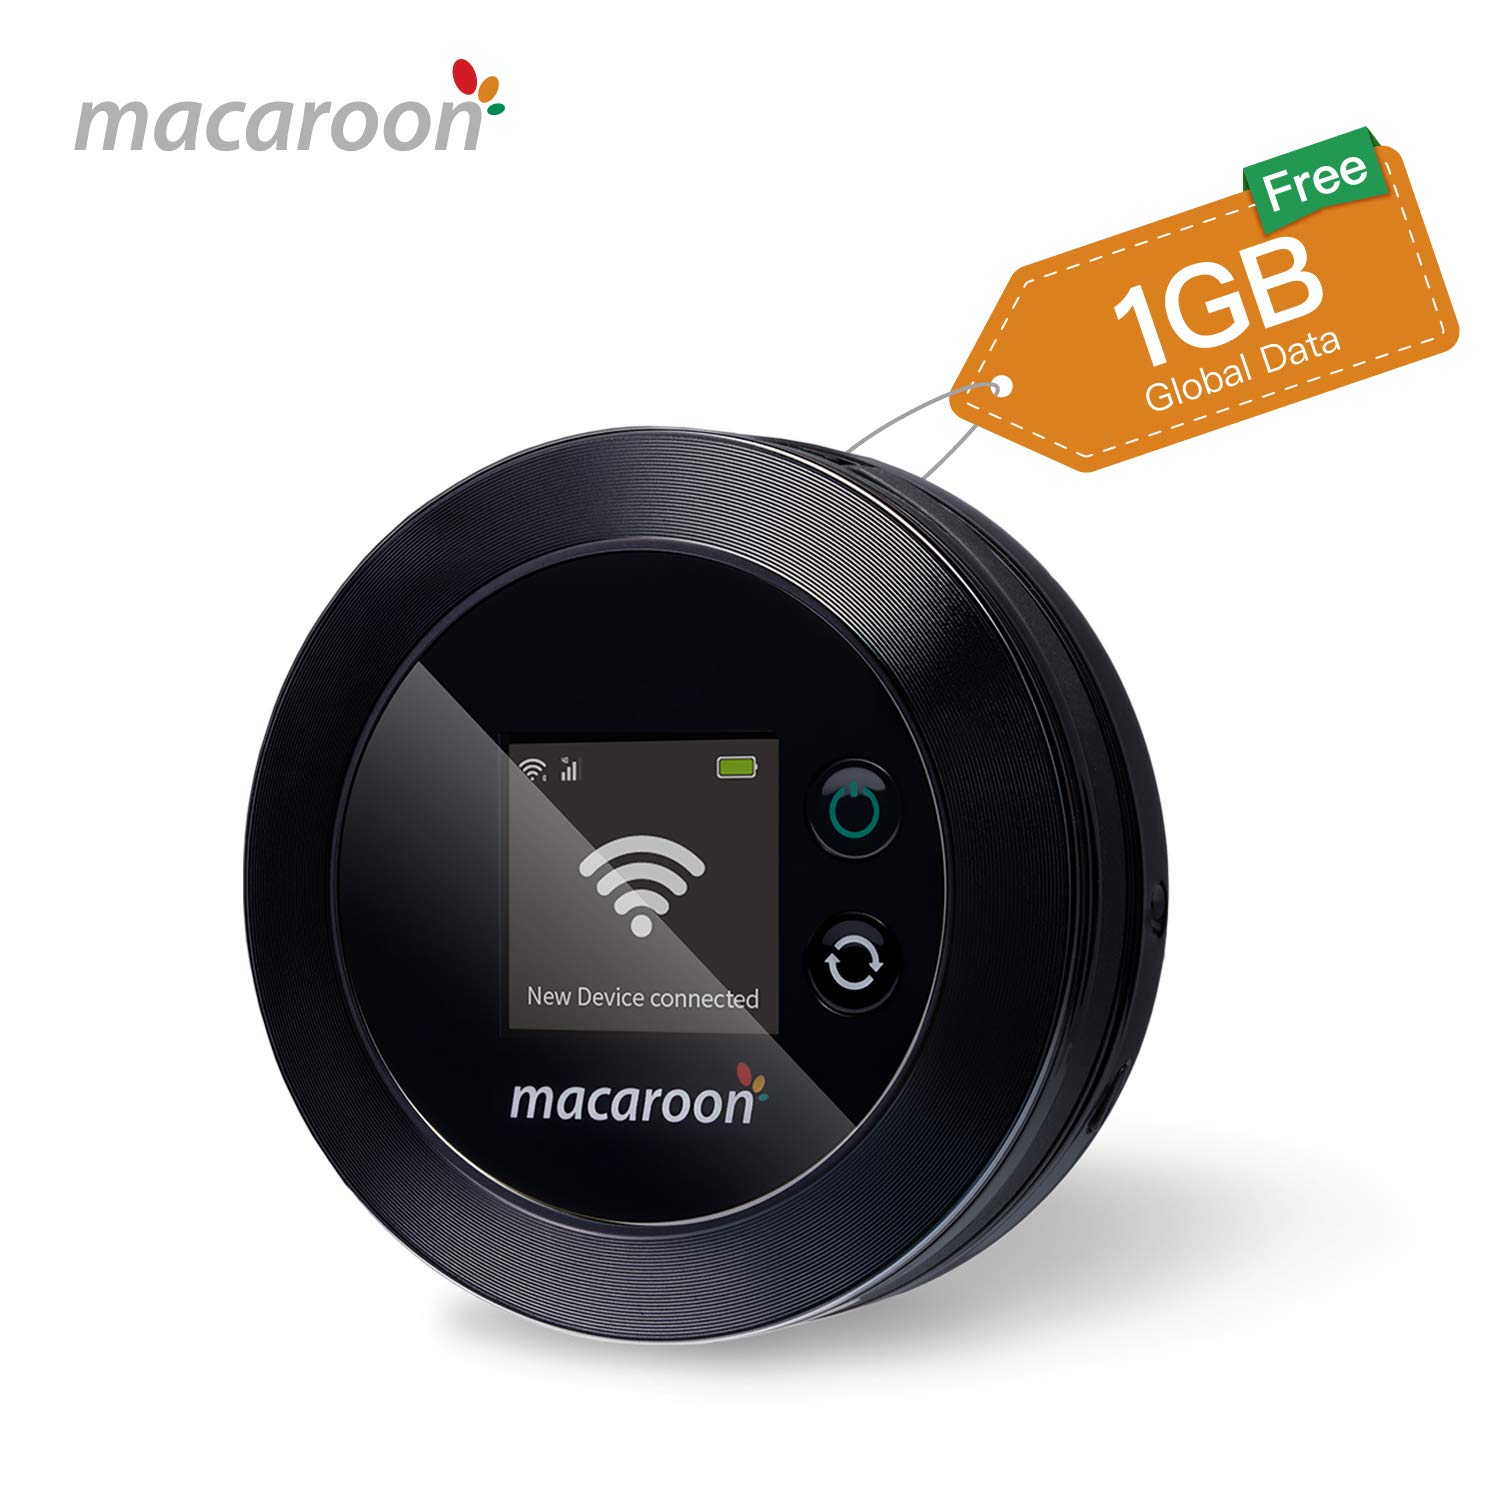 Macaroon Mobile WiFi Hotspot, 4G Unlocked Portable Mobile Wifi Router with  1GB Global Data & 5GB EU Data, Pocket MiFi Device for Businessmen Go Abroad